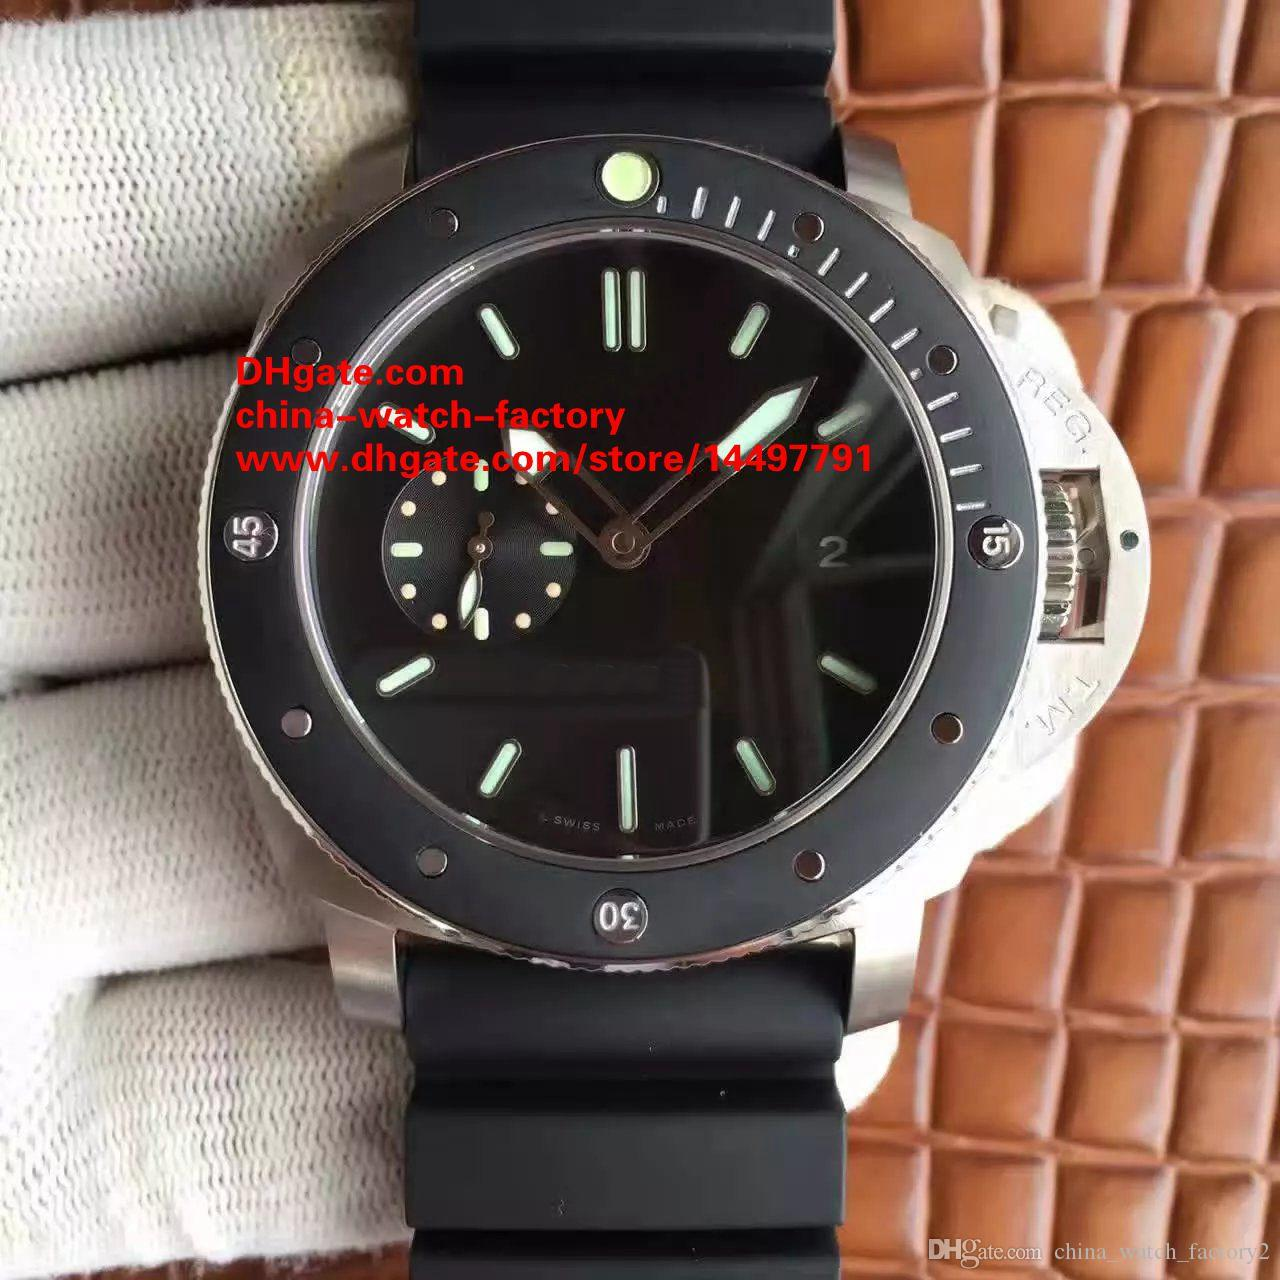 luxury watches on fsbnib fs bnib p panerai california carousell watch radiomir days acciaio